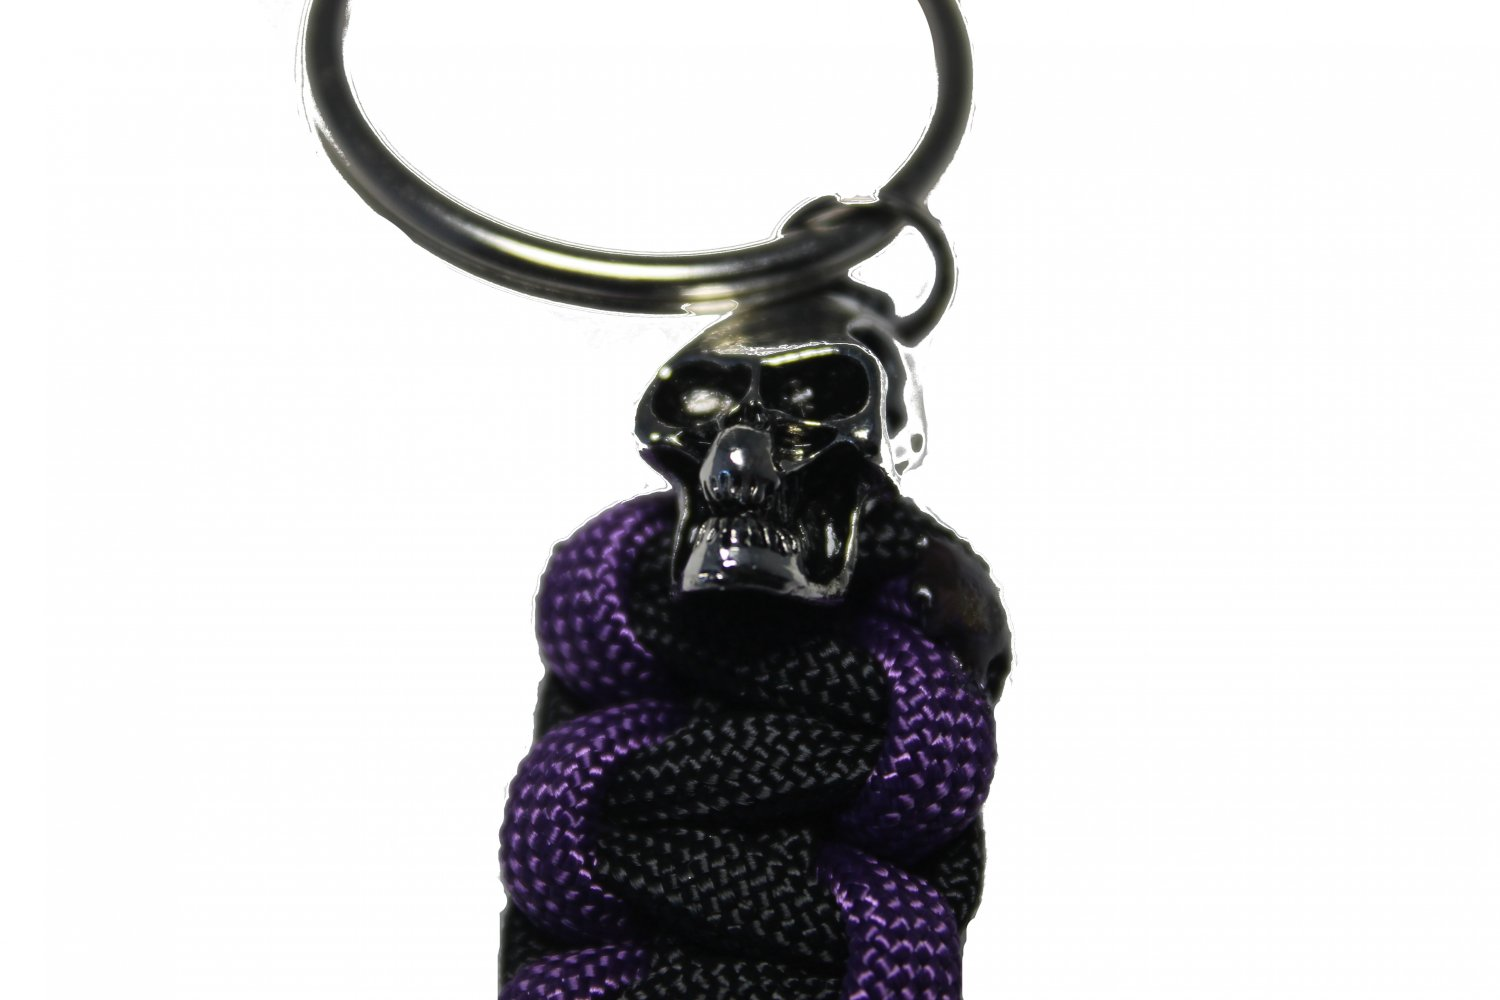 Purple and Black Key Ring with Skull